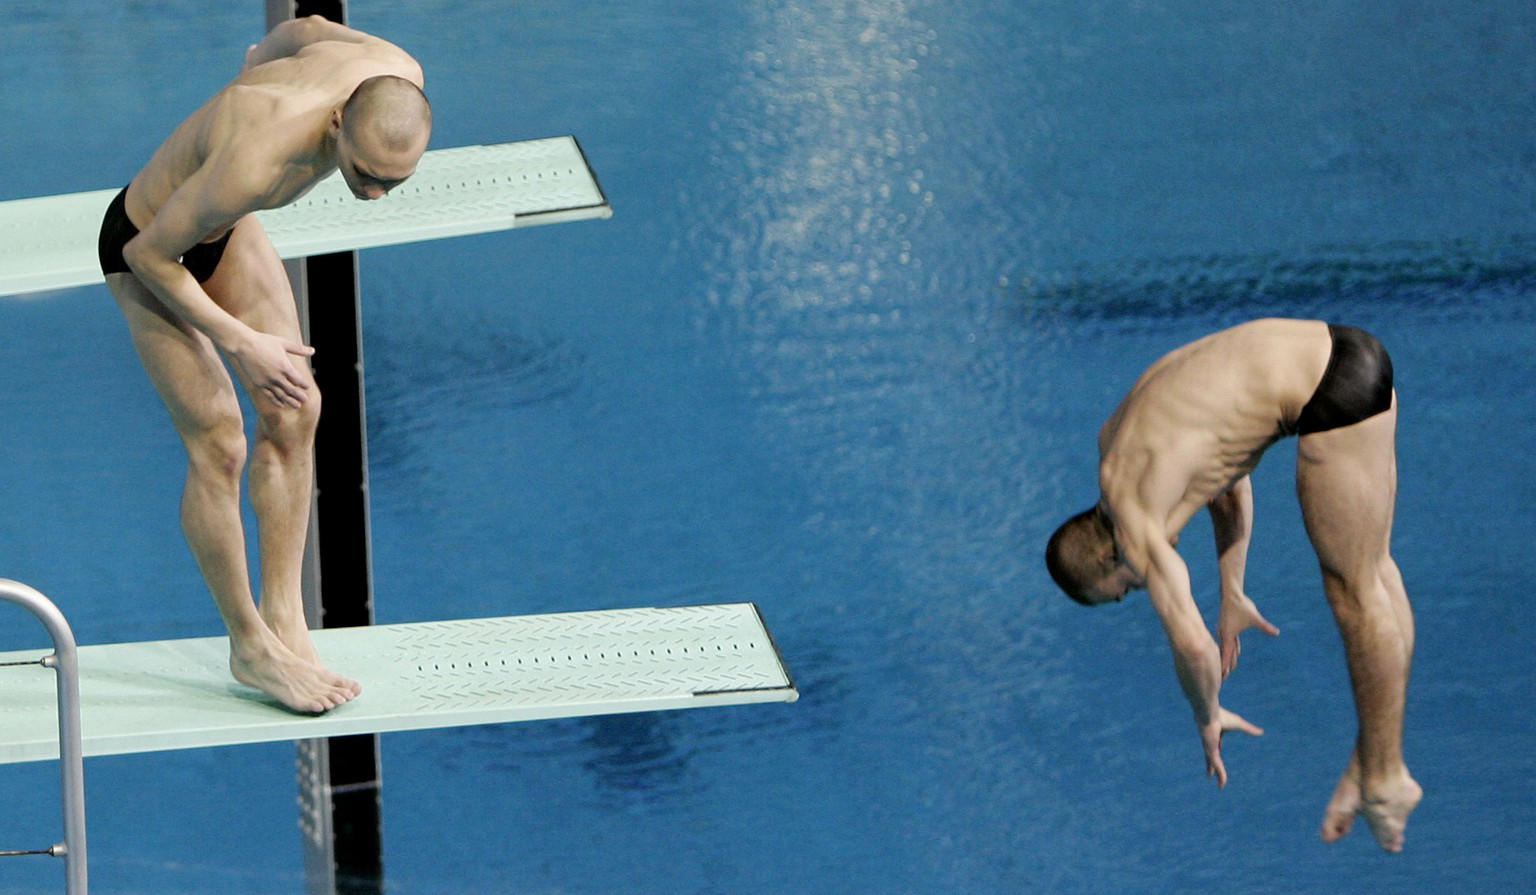 Russian diver Aleksandr Dobroskok  left, fails to dive as partner Gleb Galperin completes their routine during the final of the men's 3-meter synchro springboard event at the World Swimming Championships in Melbourne, Australia, Monday, March 19, 2007. (AP Photo/Mark Baker)